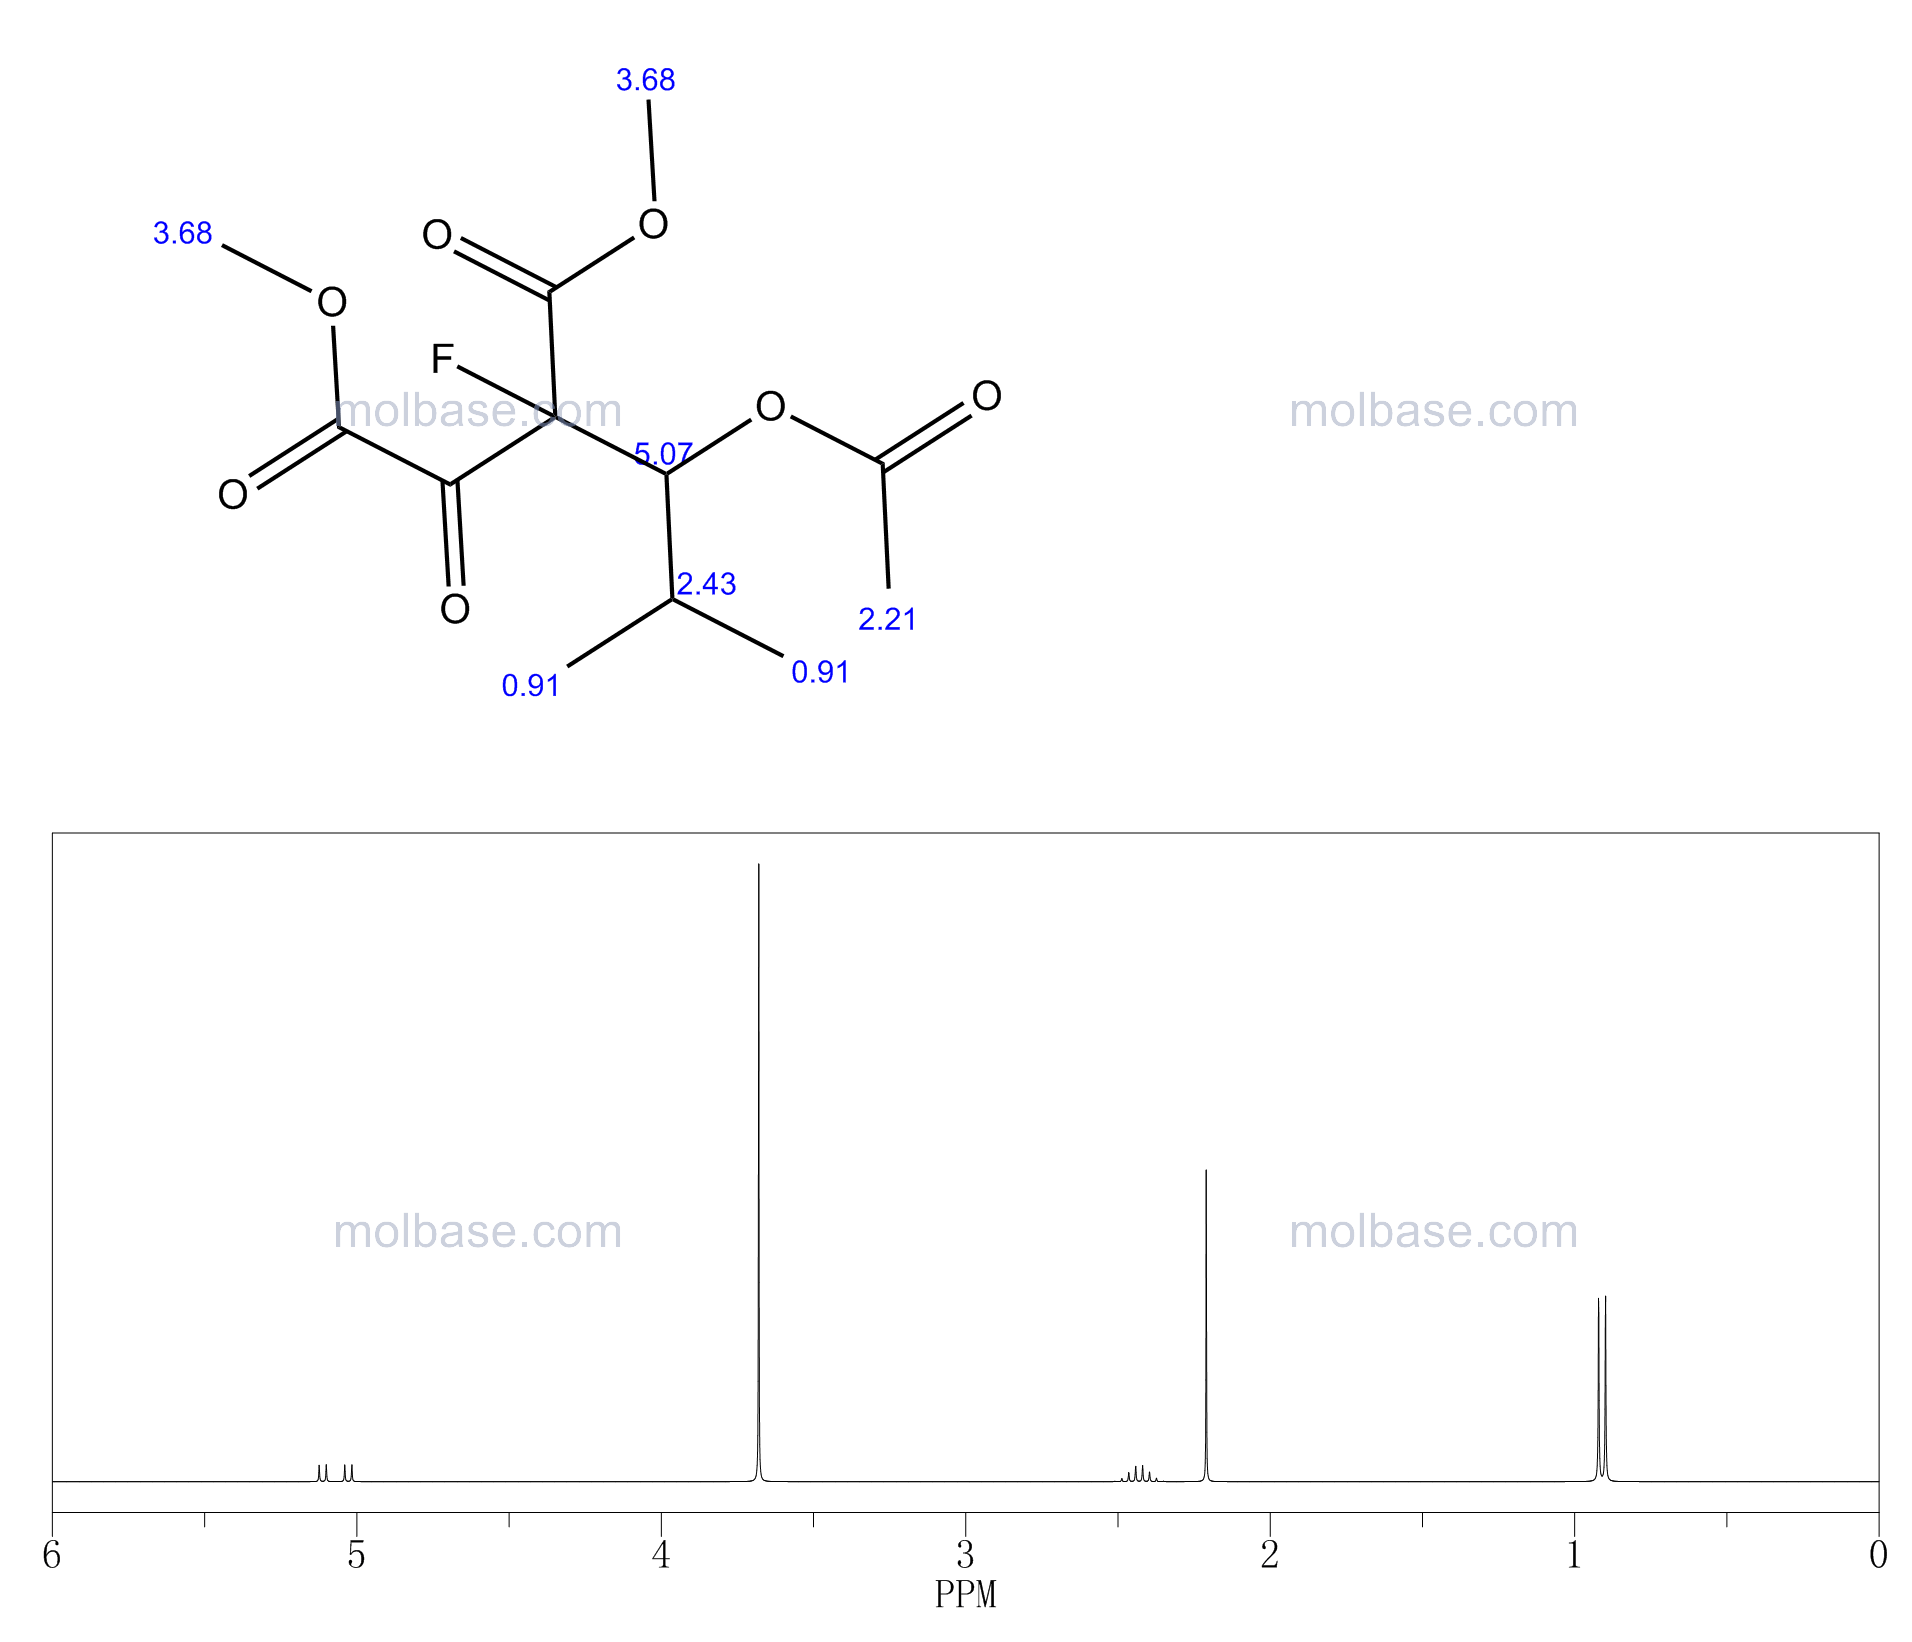 dimethyl 2-(1-acetyloxy-2-methylpropyl)-2-fluoro-3-oxobutanedioate NMR spectra analysis, Chemical CAS NO. 6935-49-5 NMR spectral analysis, dimethyl 2-(1-acetyloxy-2-methylpropyl)-2-fluoro-3-oxobutanedioate C-NMR spectrum